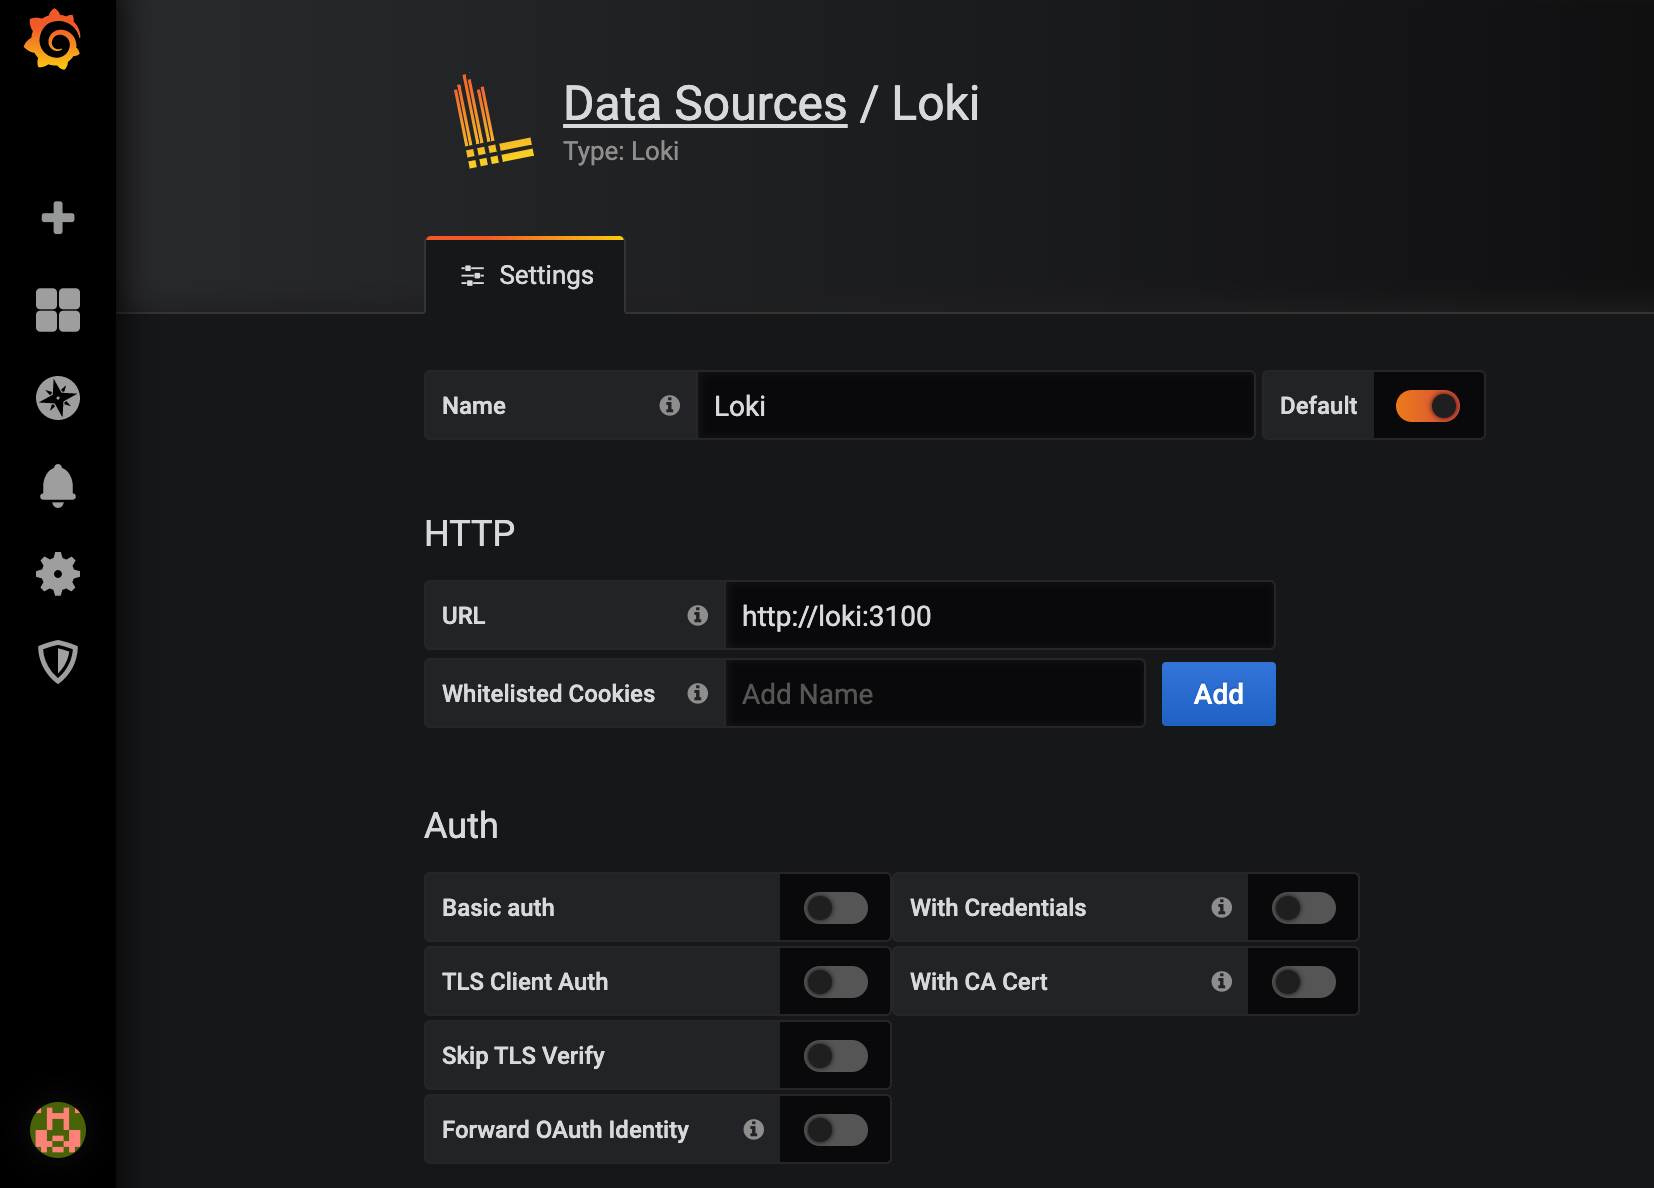 Loki__Settings_-_Grafana.png